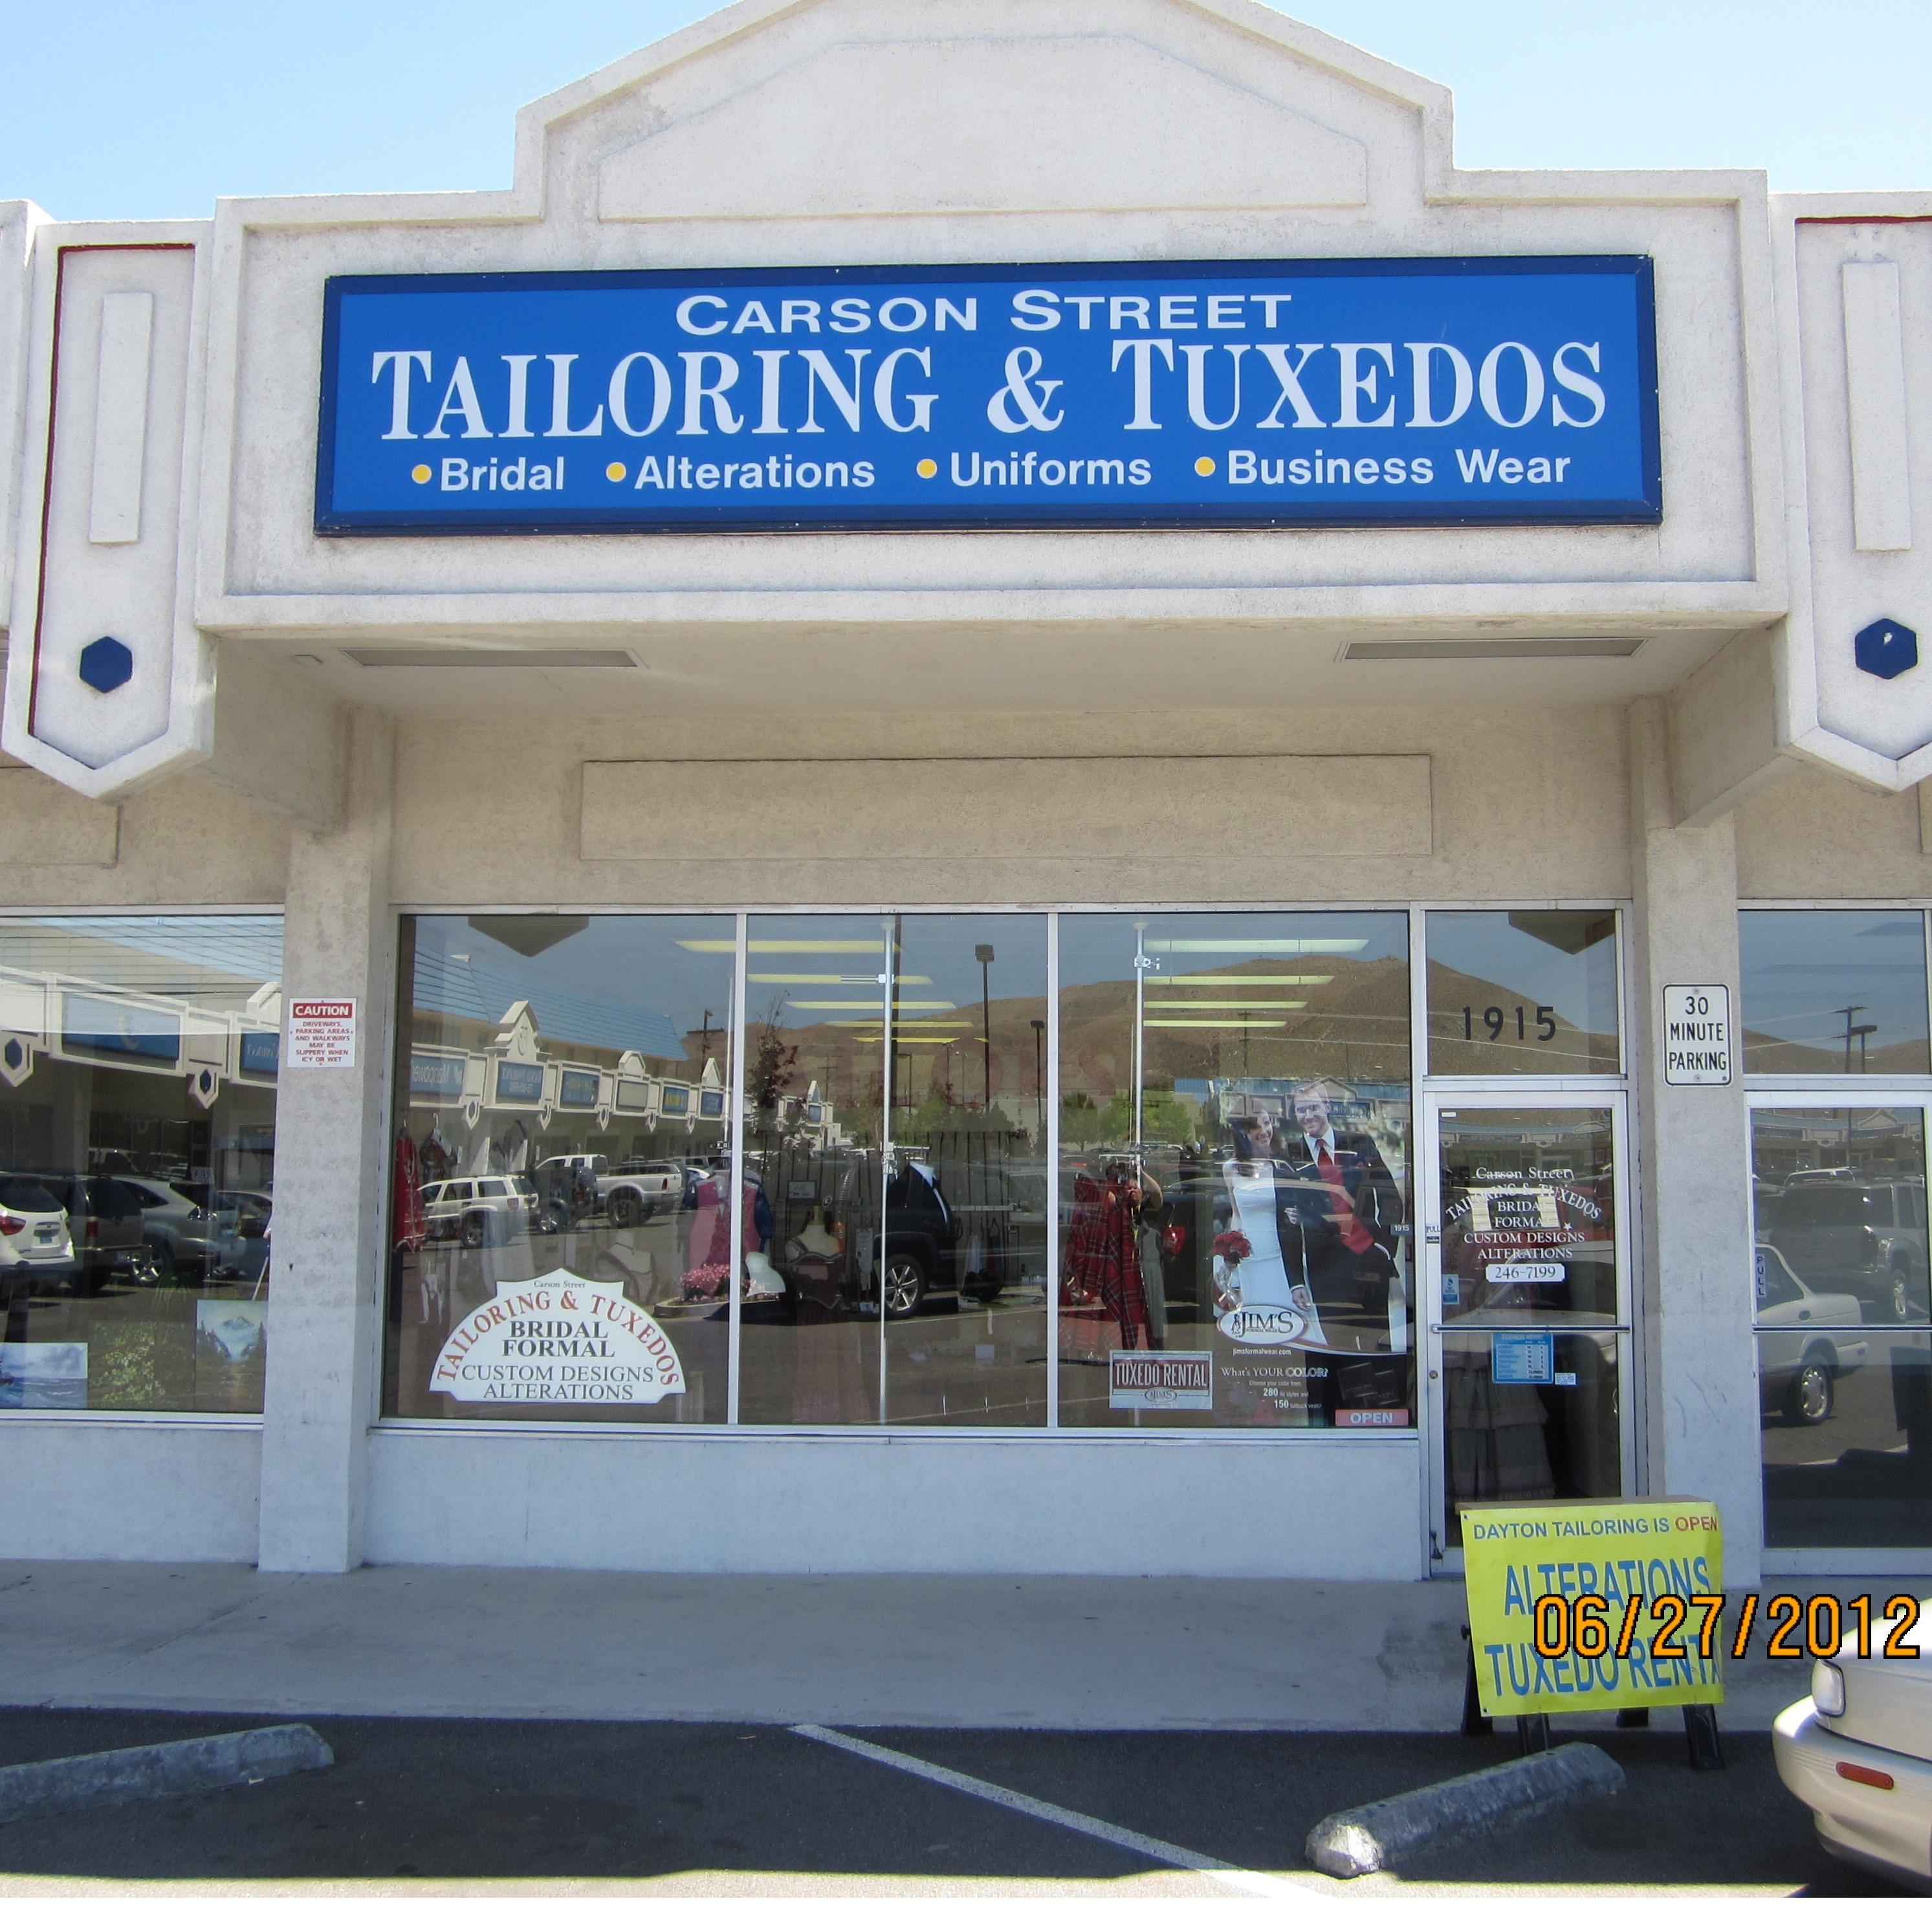 Carson Street Tailoring and Tuxedos